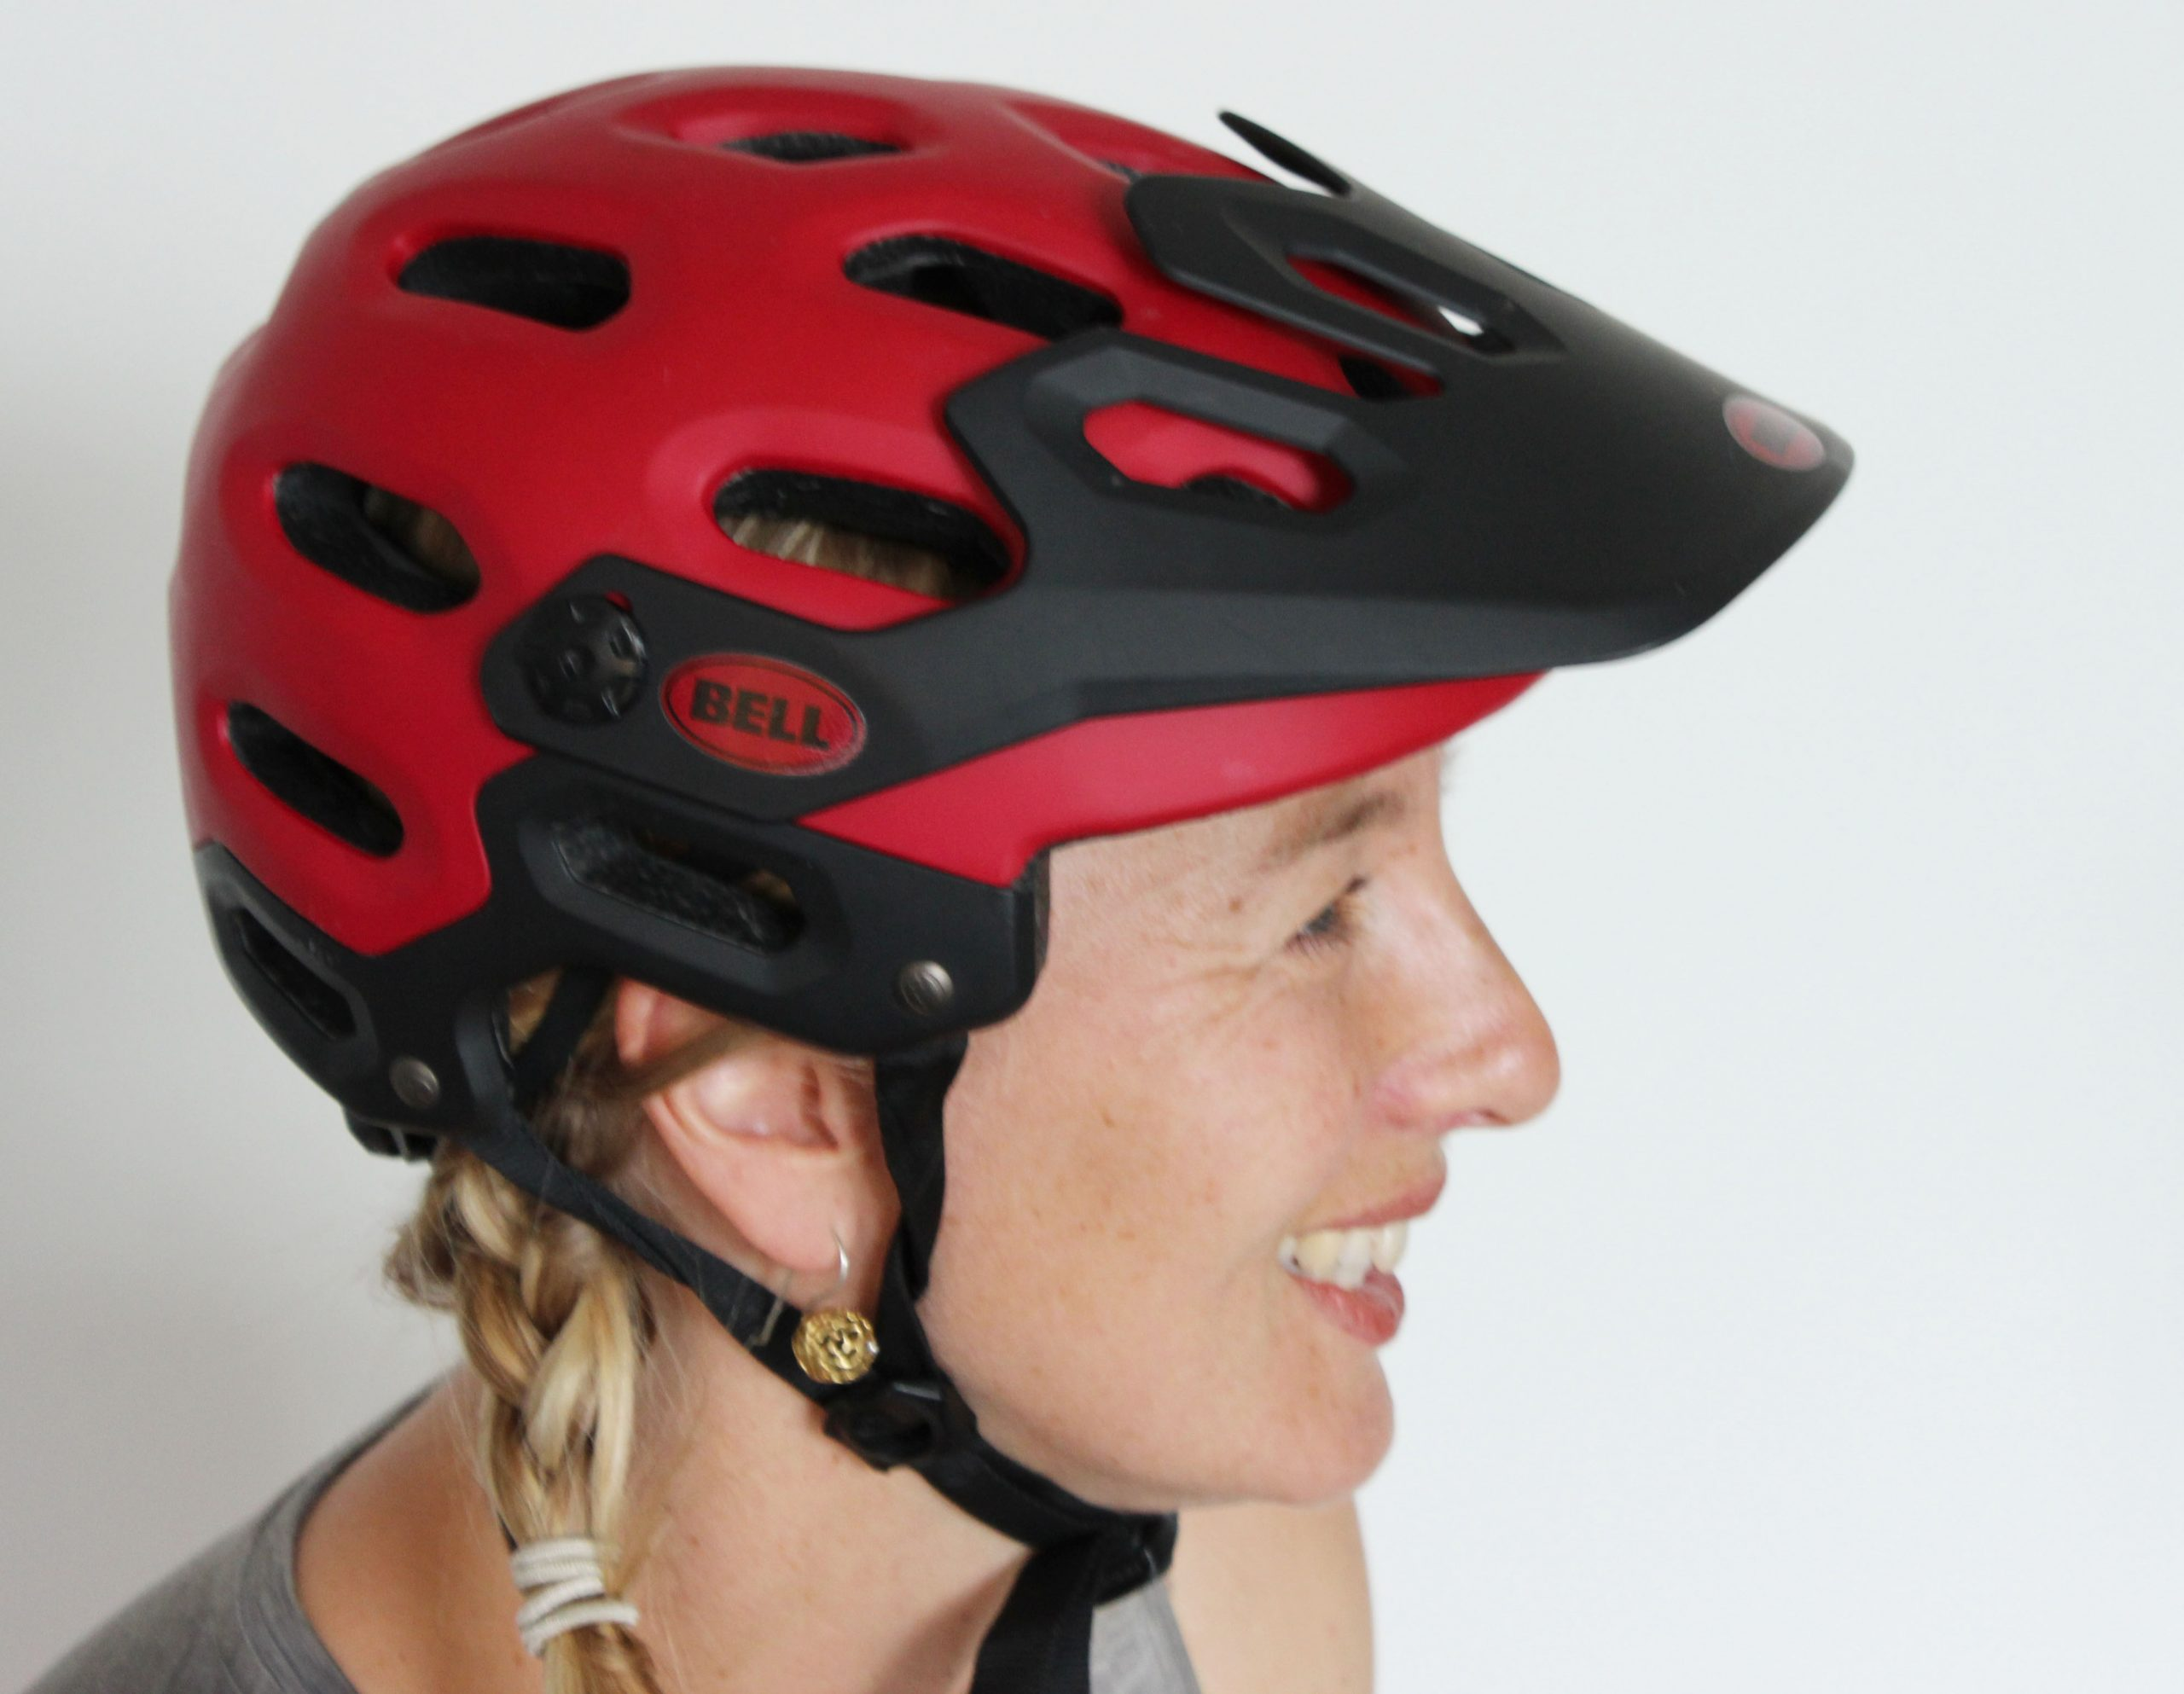 How are you wearing your helmet?